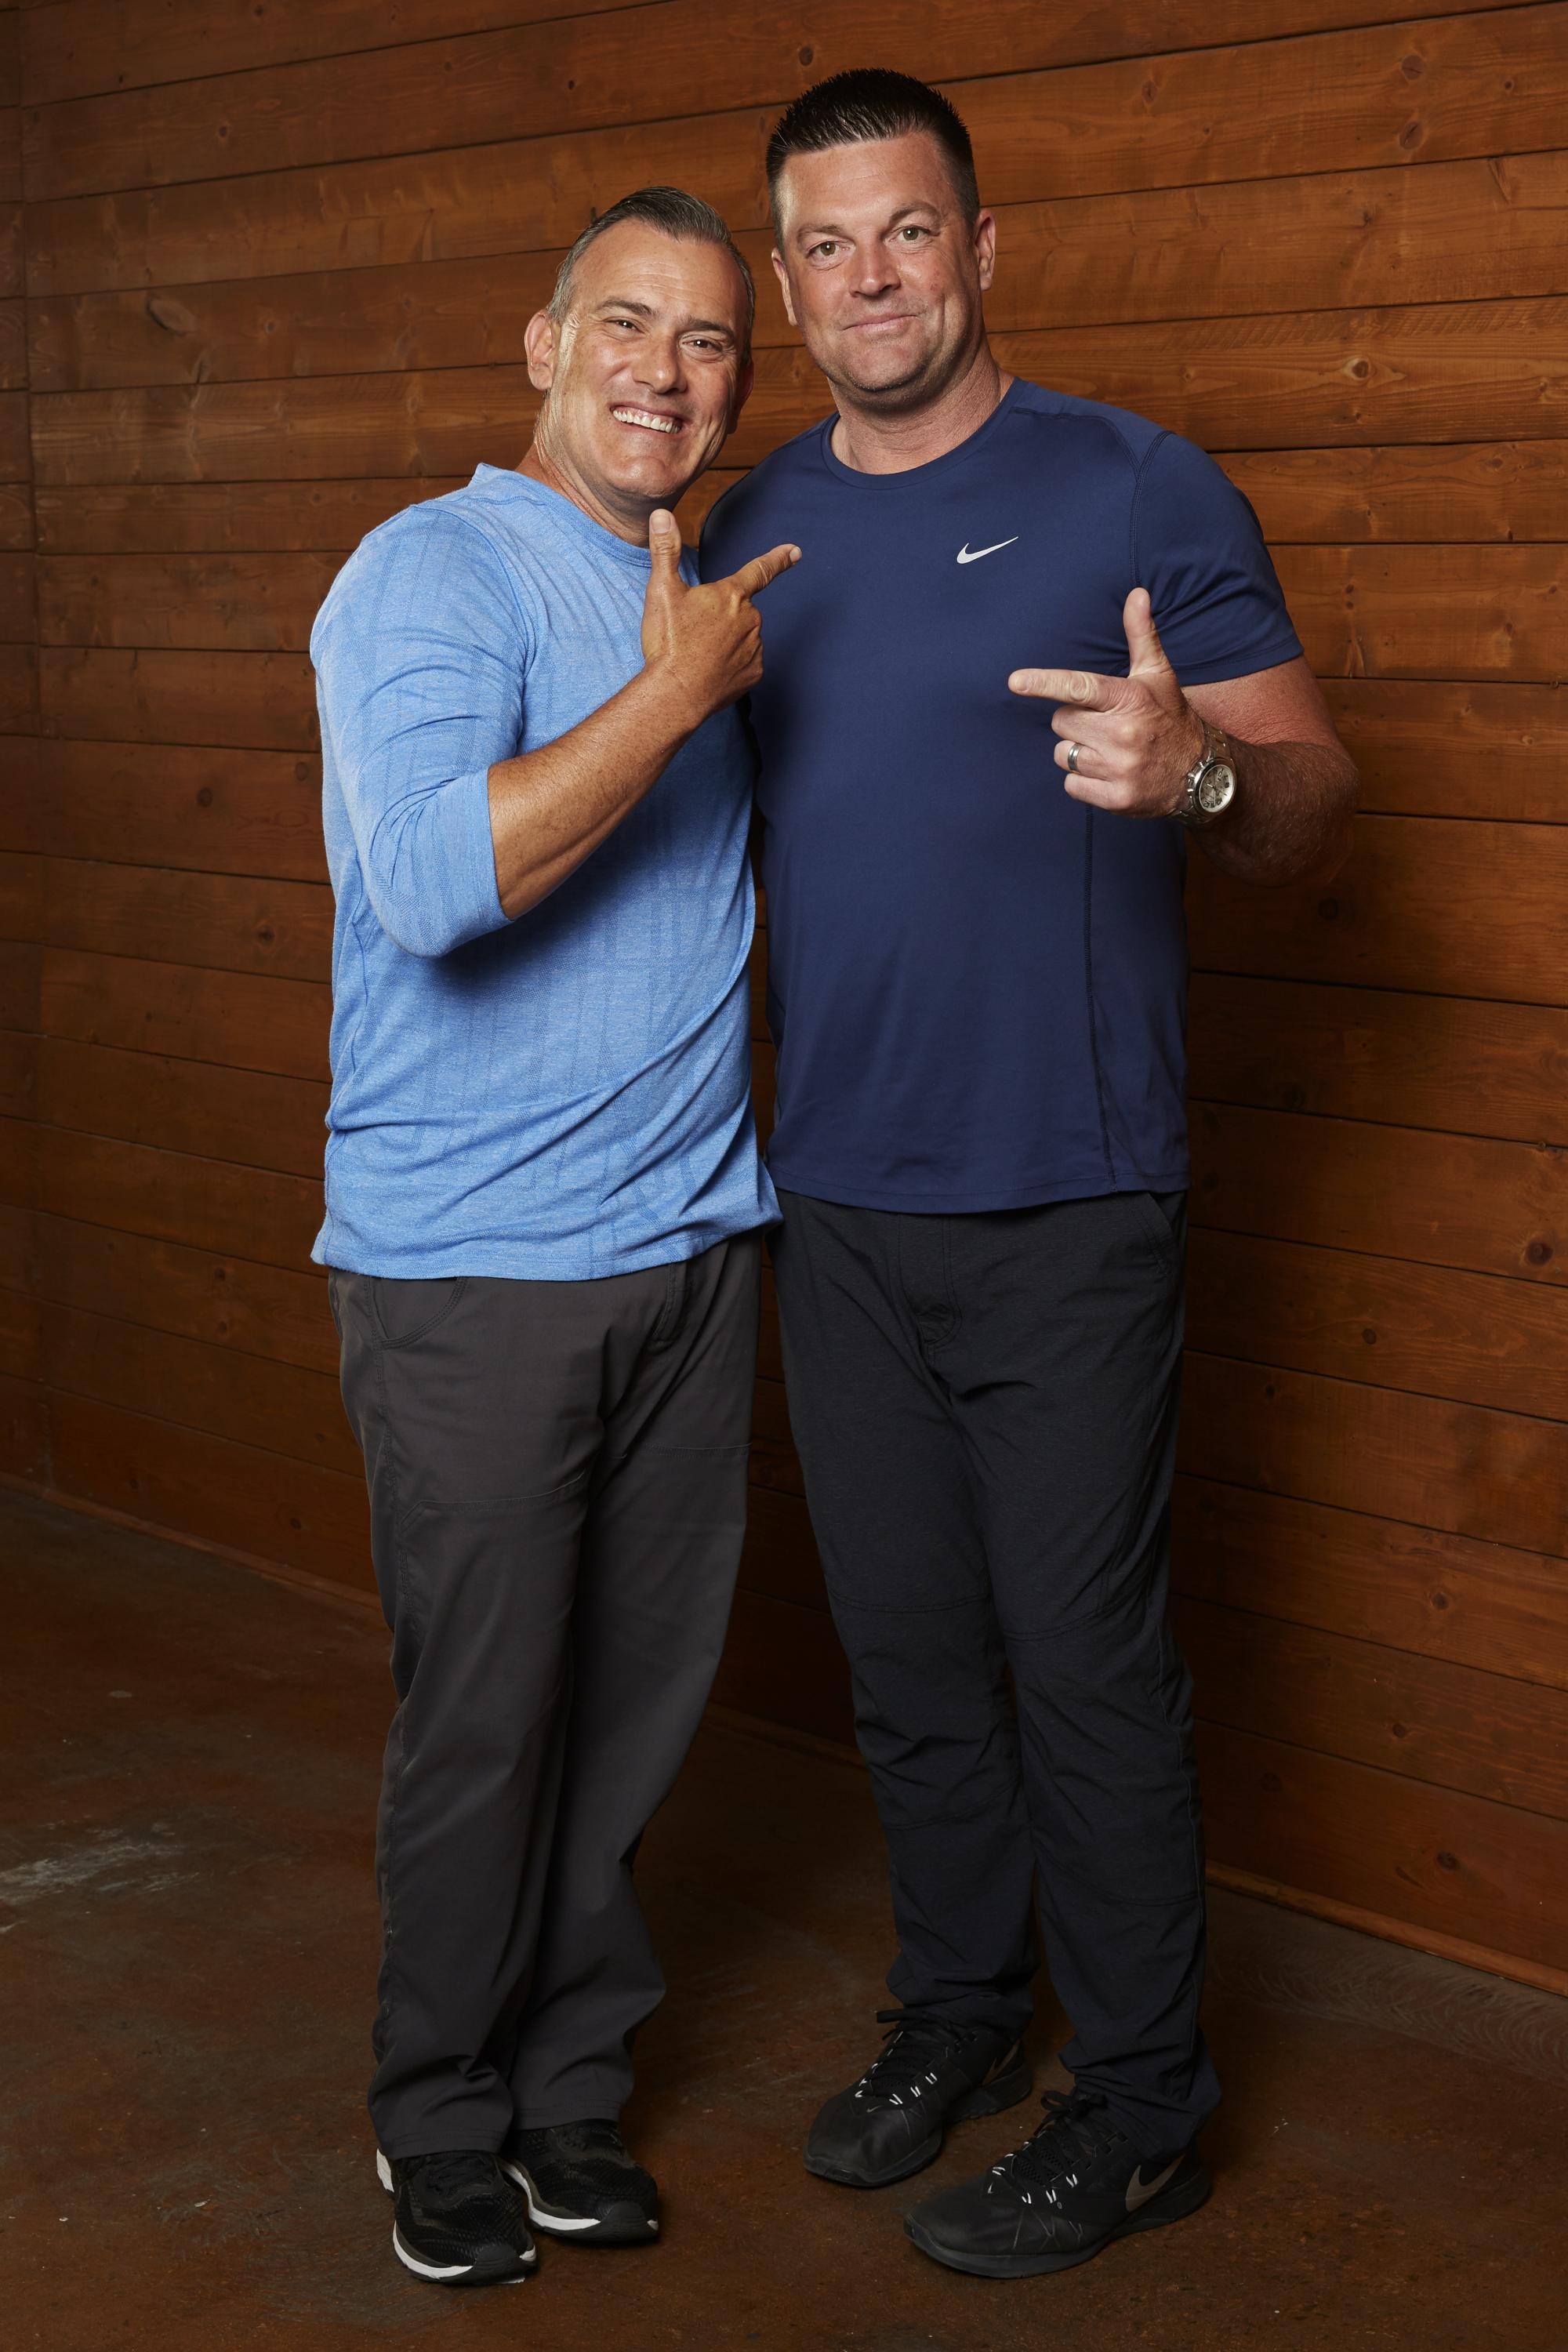 Amazing Race' Season 31 Cast Announced, Which 'Big Brother